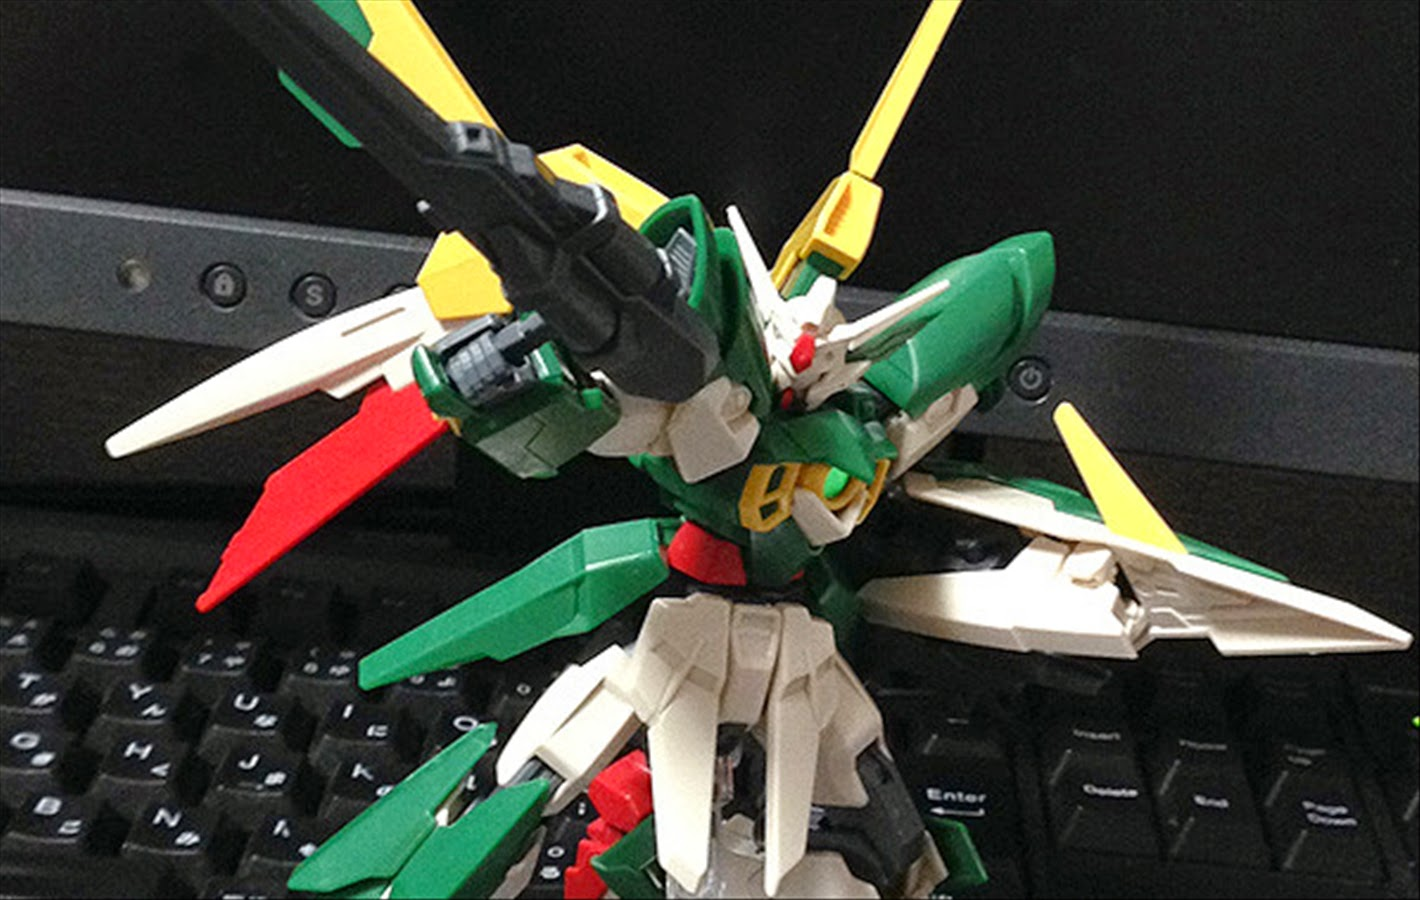 "HGBF 1/144 Wing Gundam Rinascita ""Reborn"" - Release Info, Box Art and Official Images"